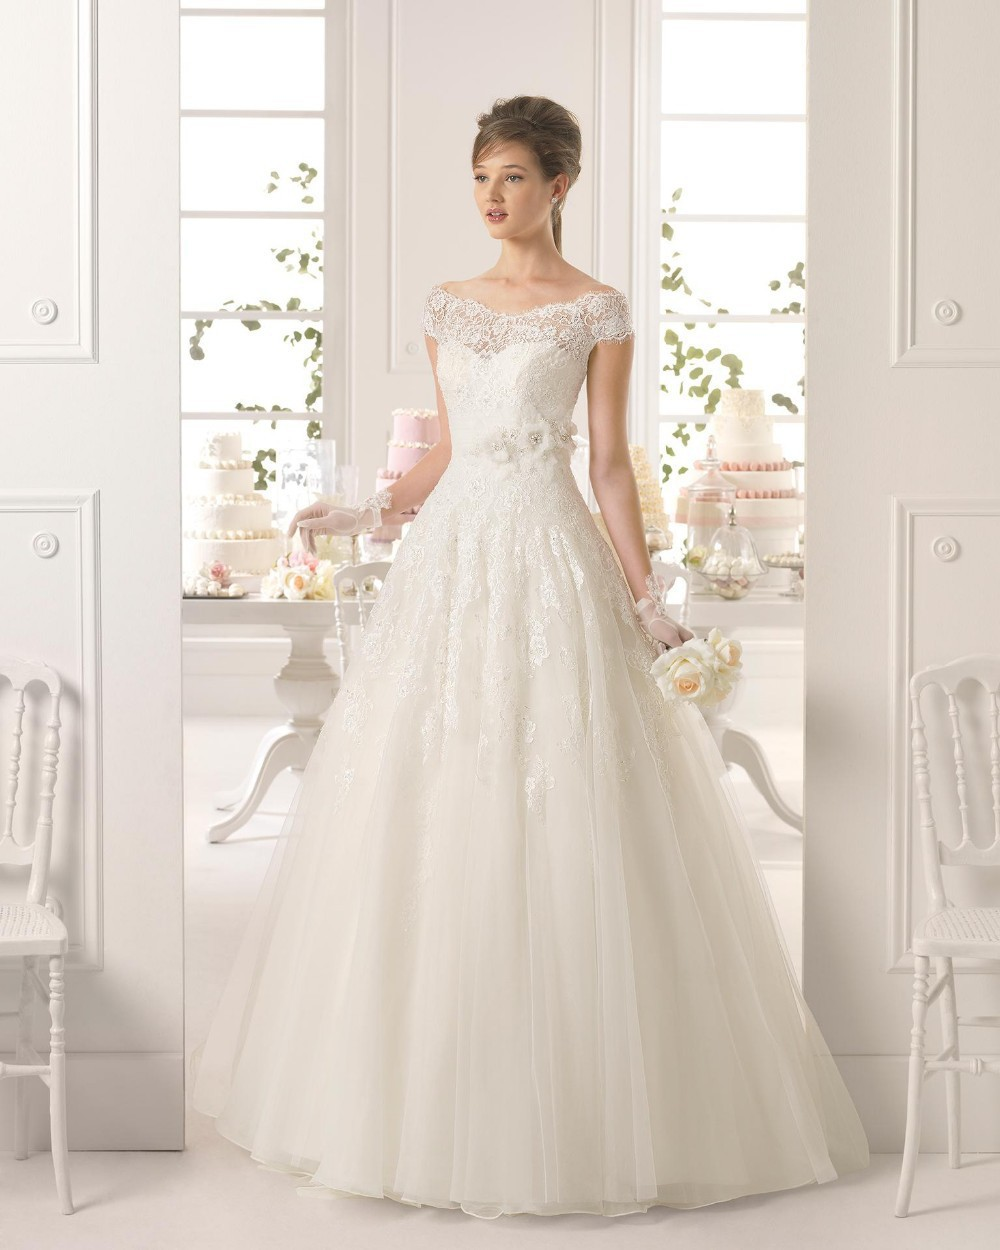 Designer Bridal Gowns 2015, Bridal Dresses with a Short Sleeve, Wedding Gowns with Sleeves, Long Sleeve Wedding Dresses 2015, Long Sleeve Wedding Dresses, Lace Wedding Dresses with Sleeves, Long Sleeve Lace Wedding Gowns, Bridesmaid Dresses 2015 with Sleeves